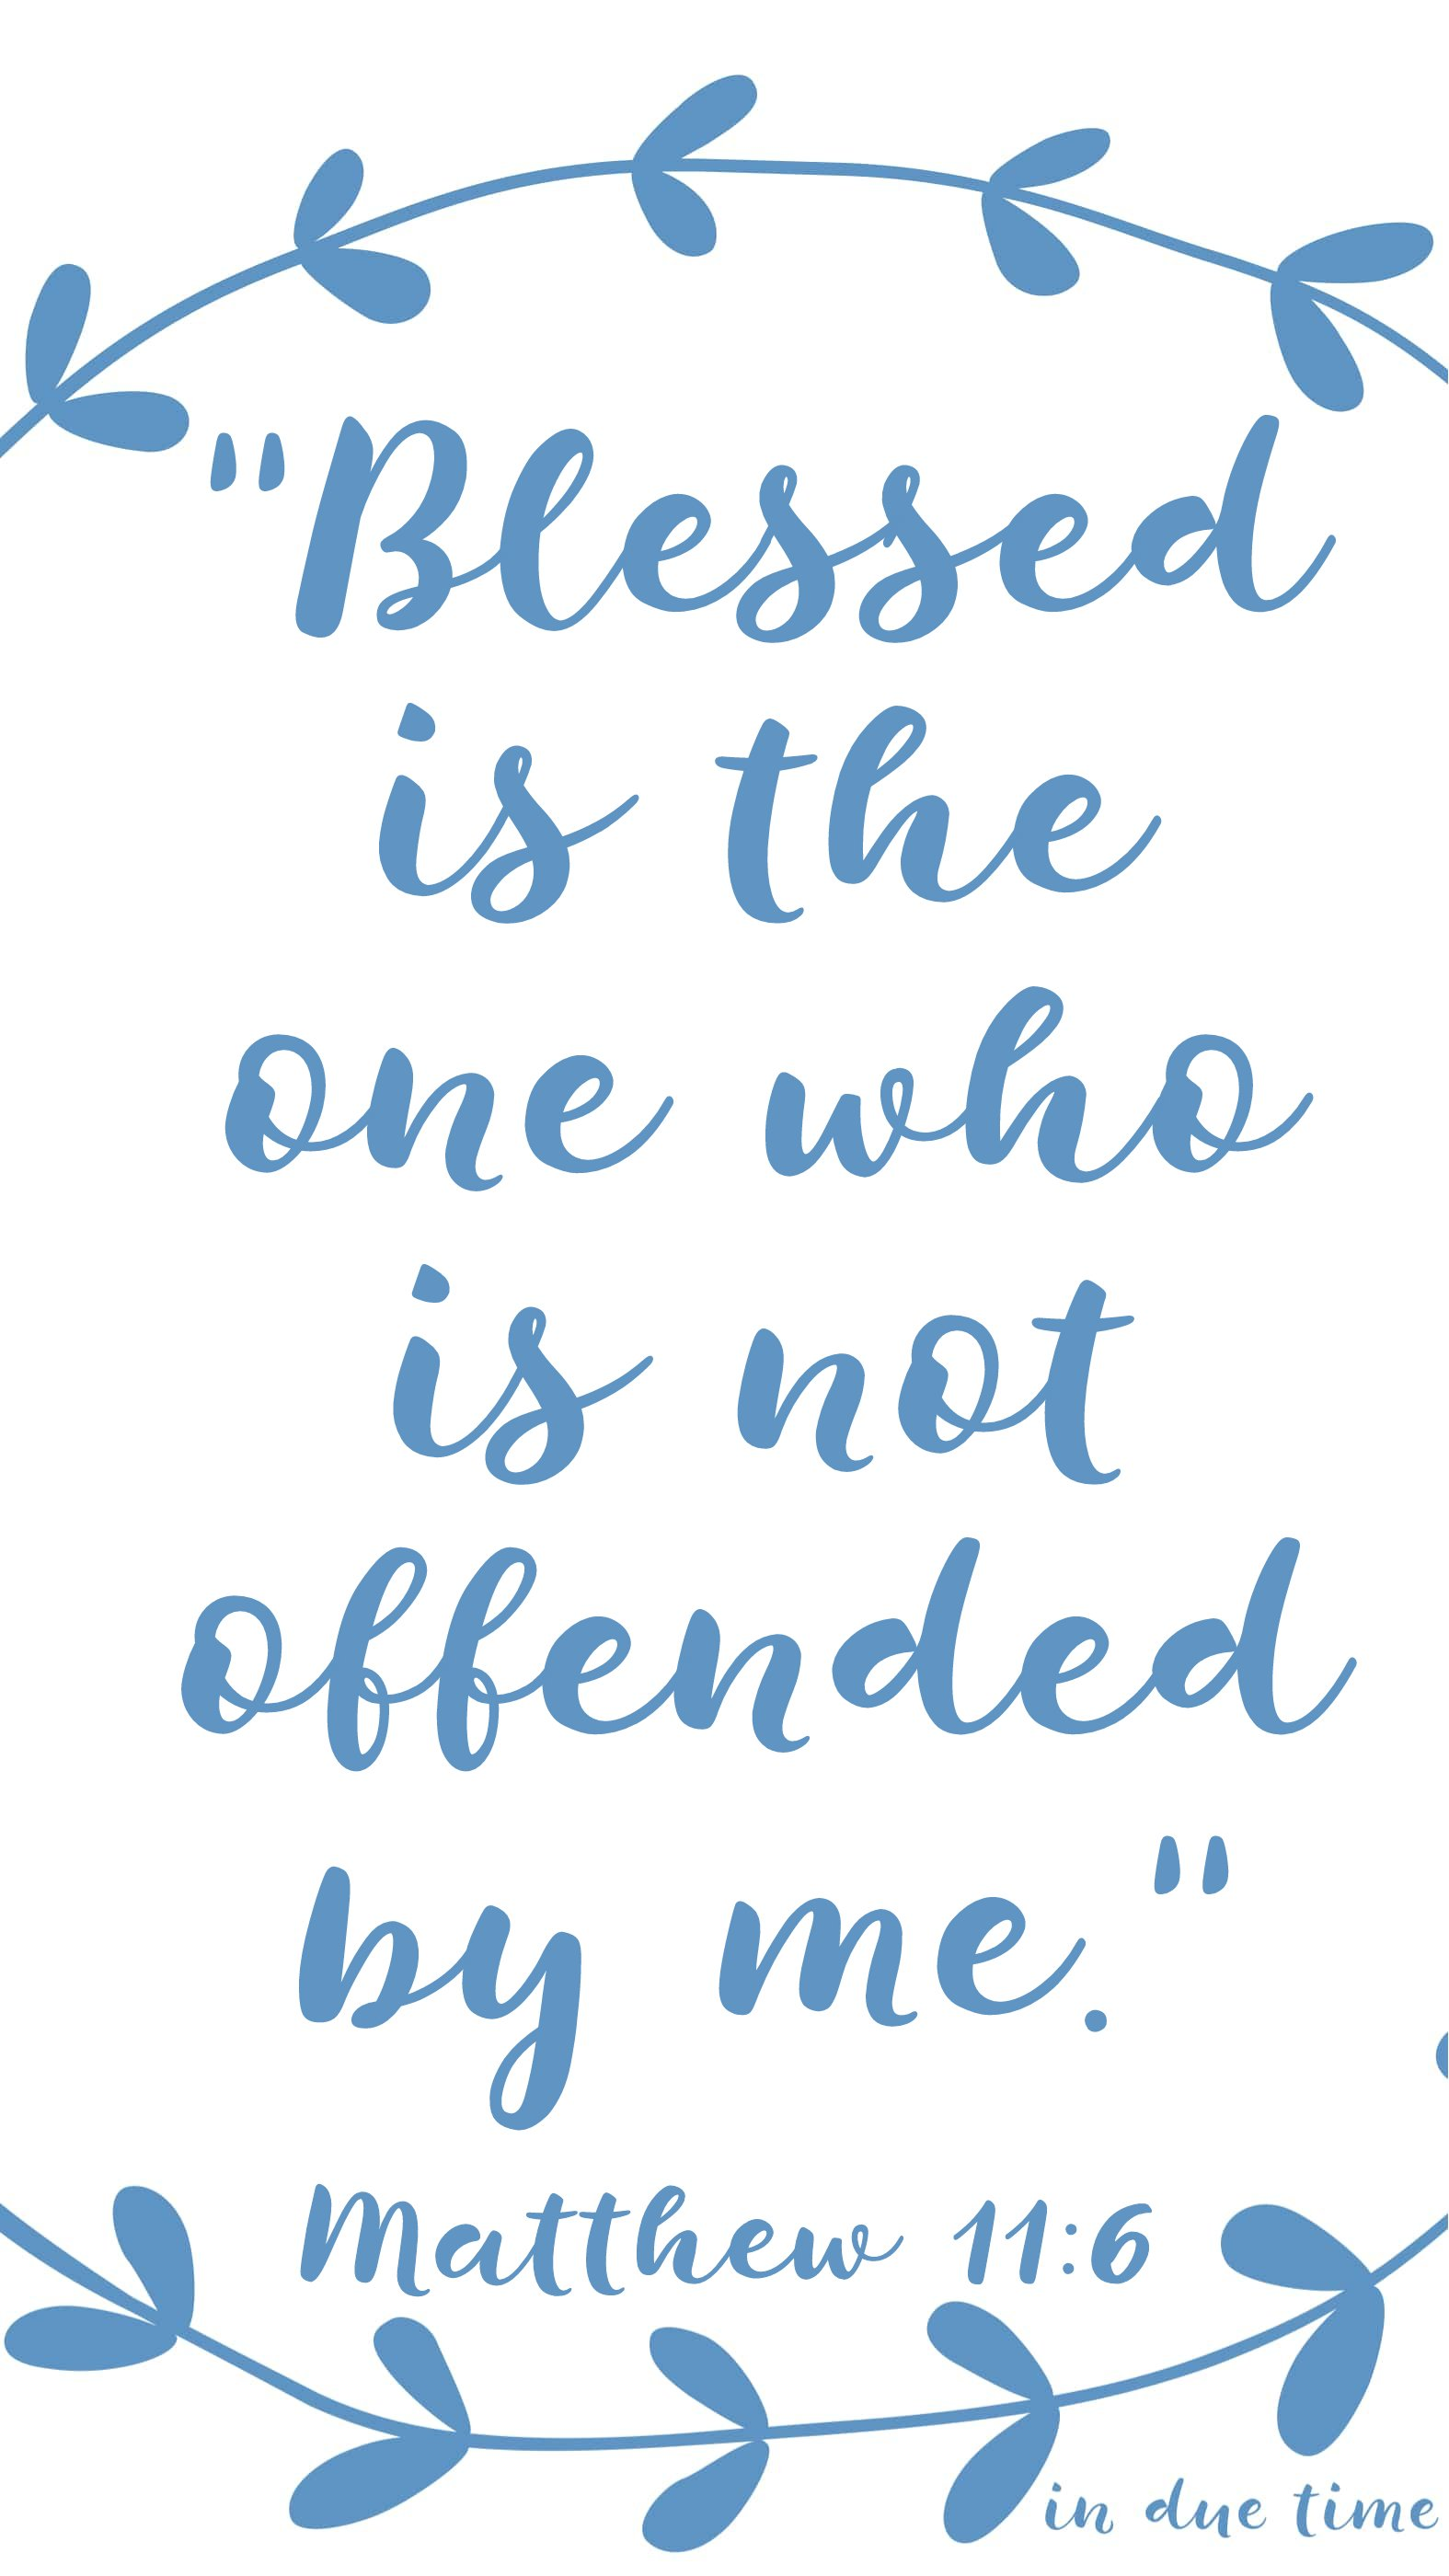 Blessed is the one who is not offended by me